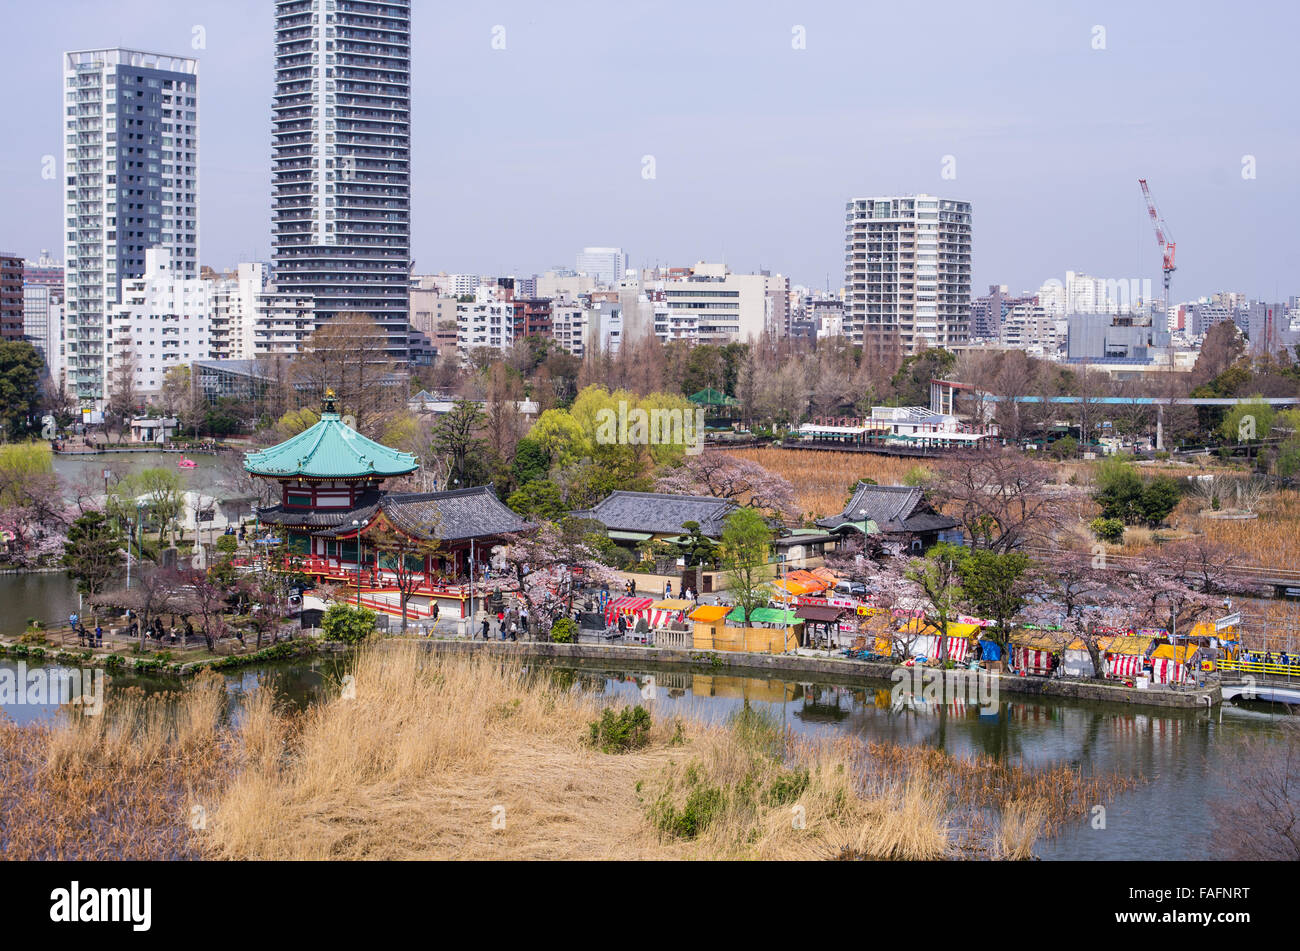 Bentendo with Shinobazu Pond at Ueno Park, Tokyo during cherry blossom season with a small festival on the grounds Stock Photo